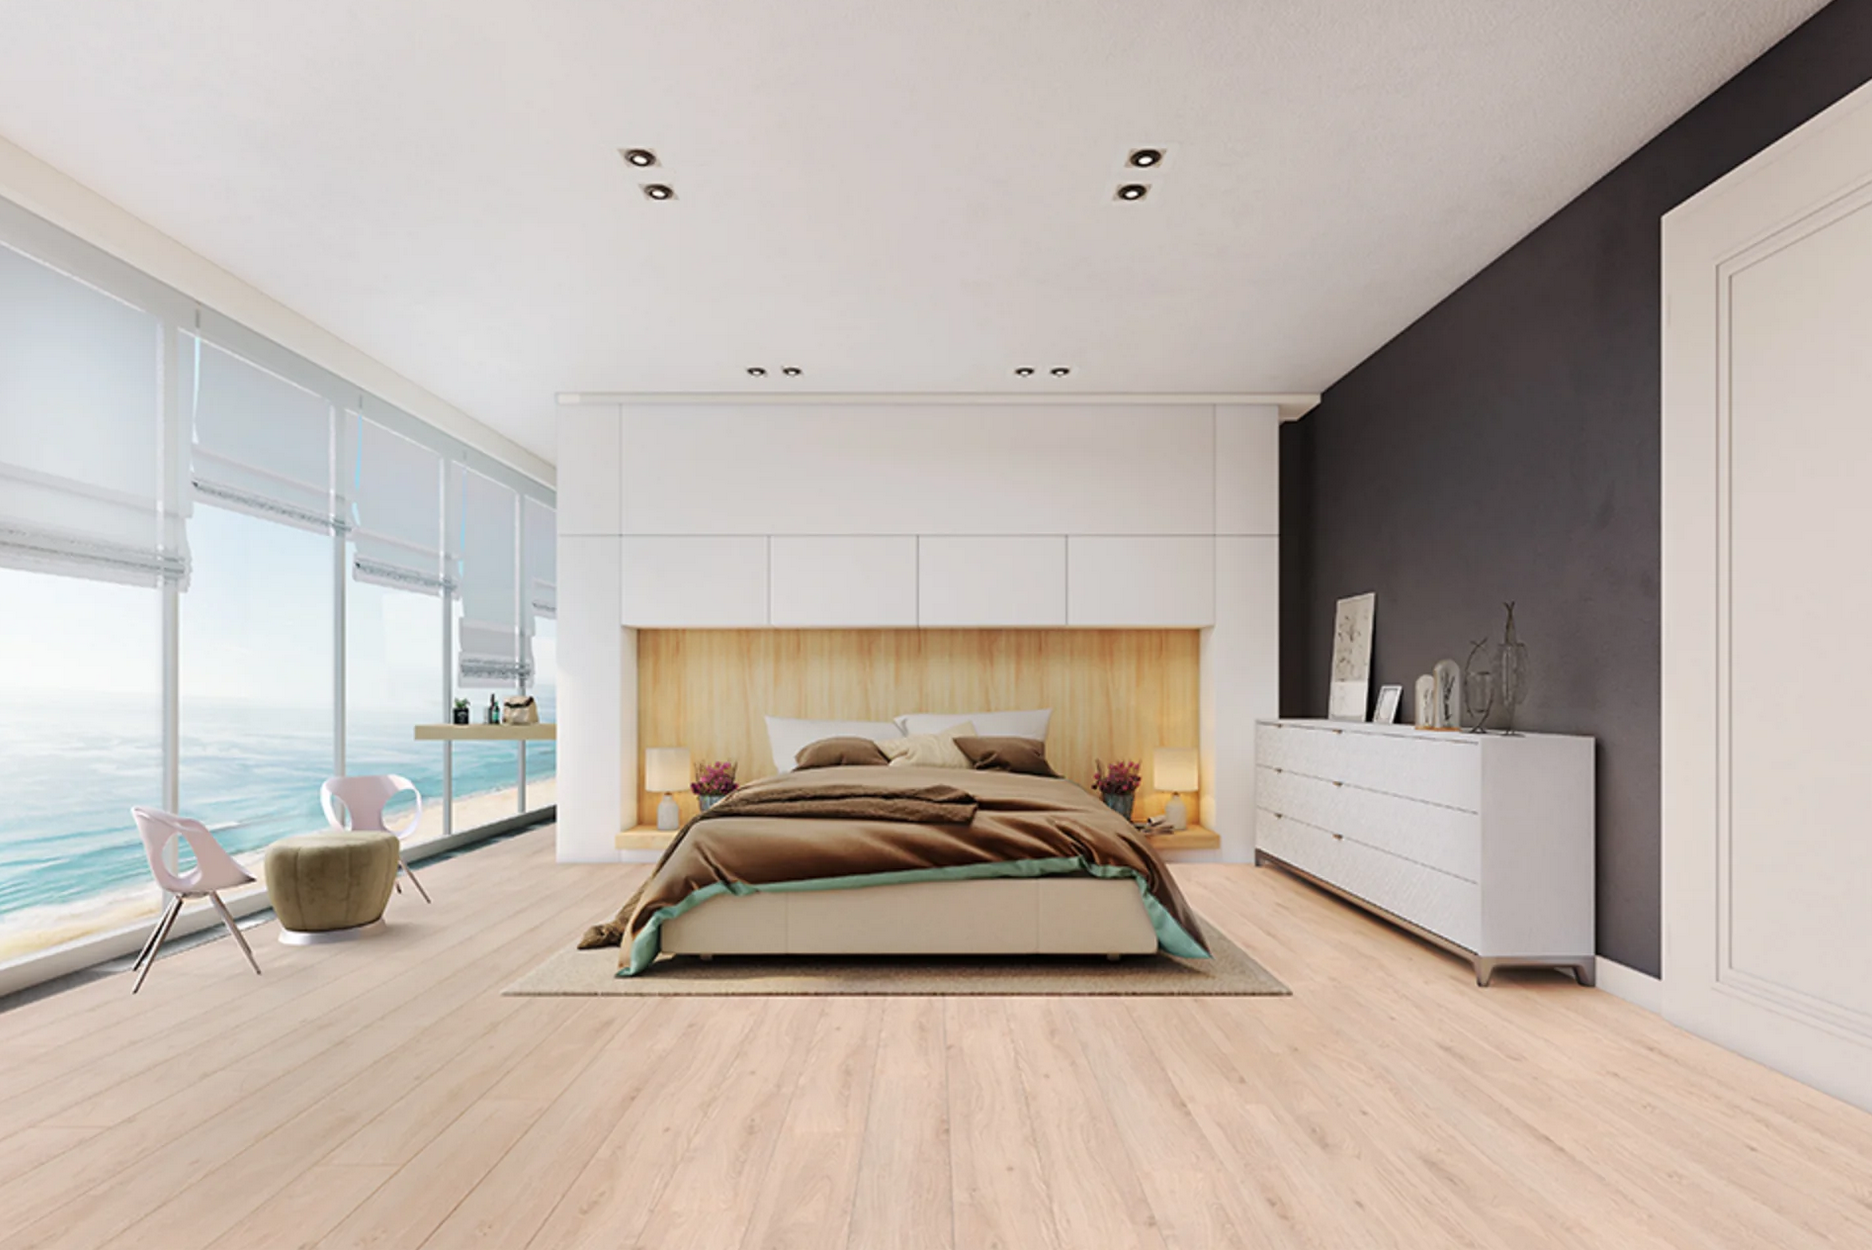 Wood Flooring For Your Bedroom - Wood and Beyond Blog